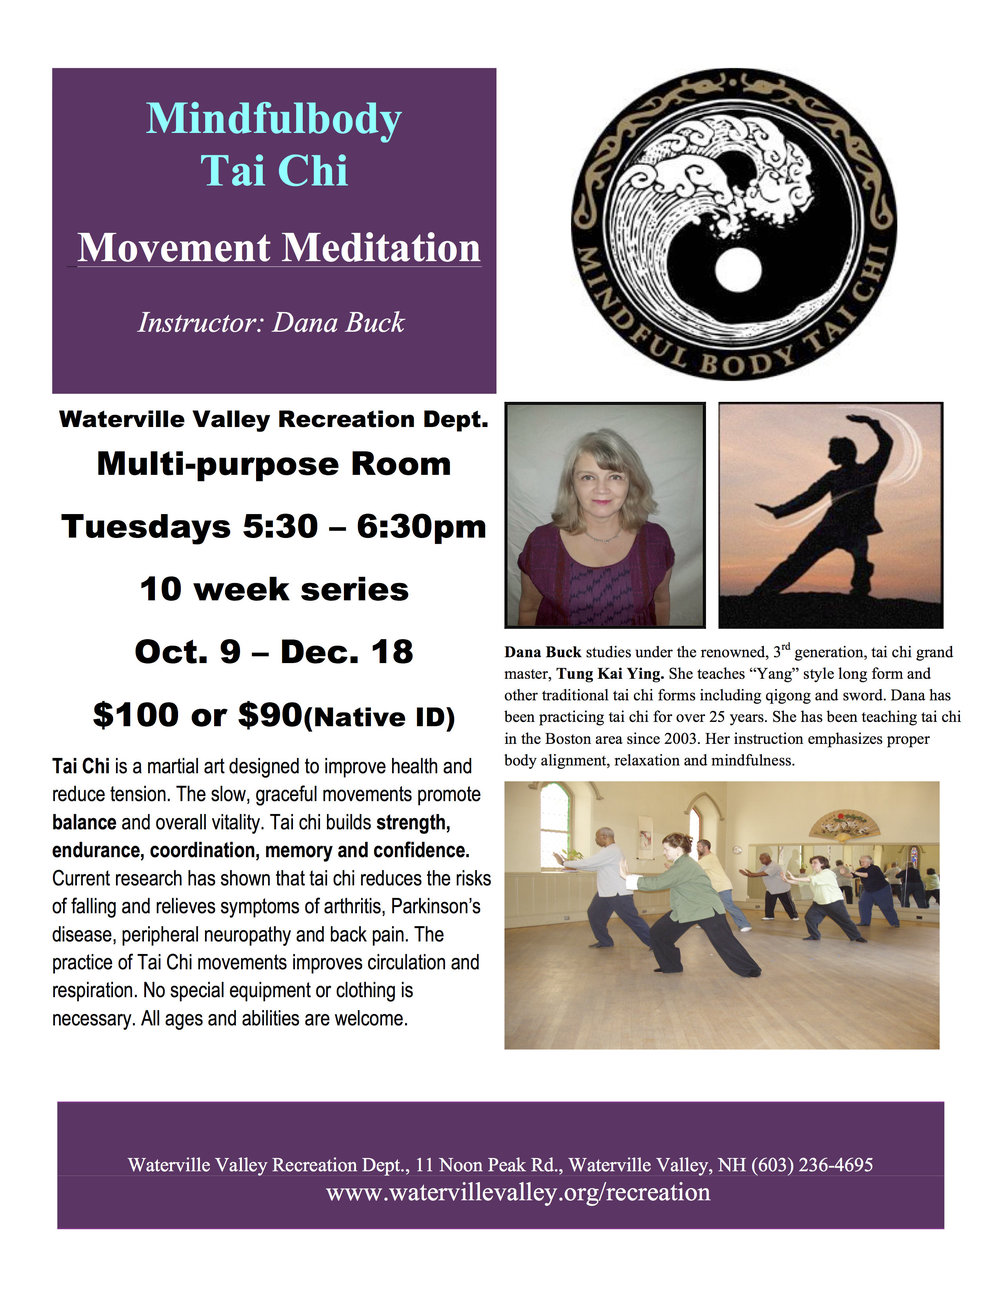 Tai Chi is back! This class is designed for everyone! No special equipment or clothing needed. Class runs Tuesdays from October 9 - December 18 (no class Nov. 6) from 5:30-6:30pm